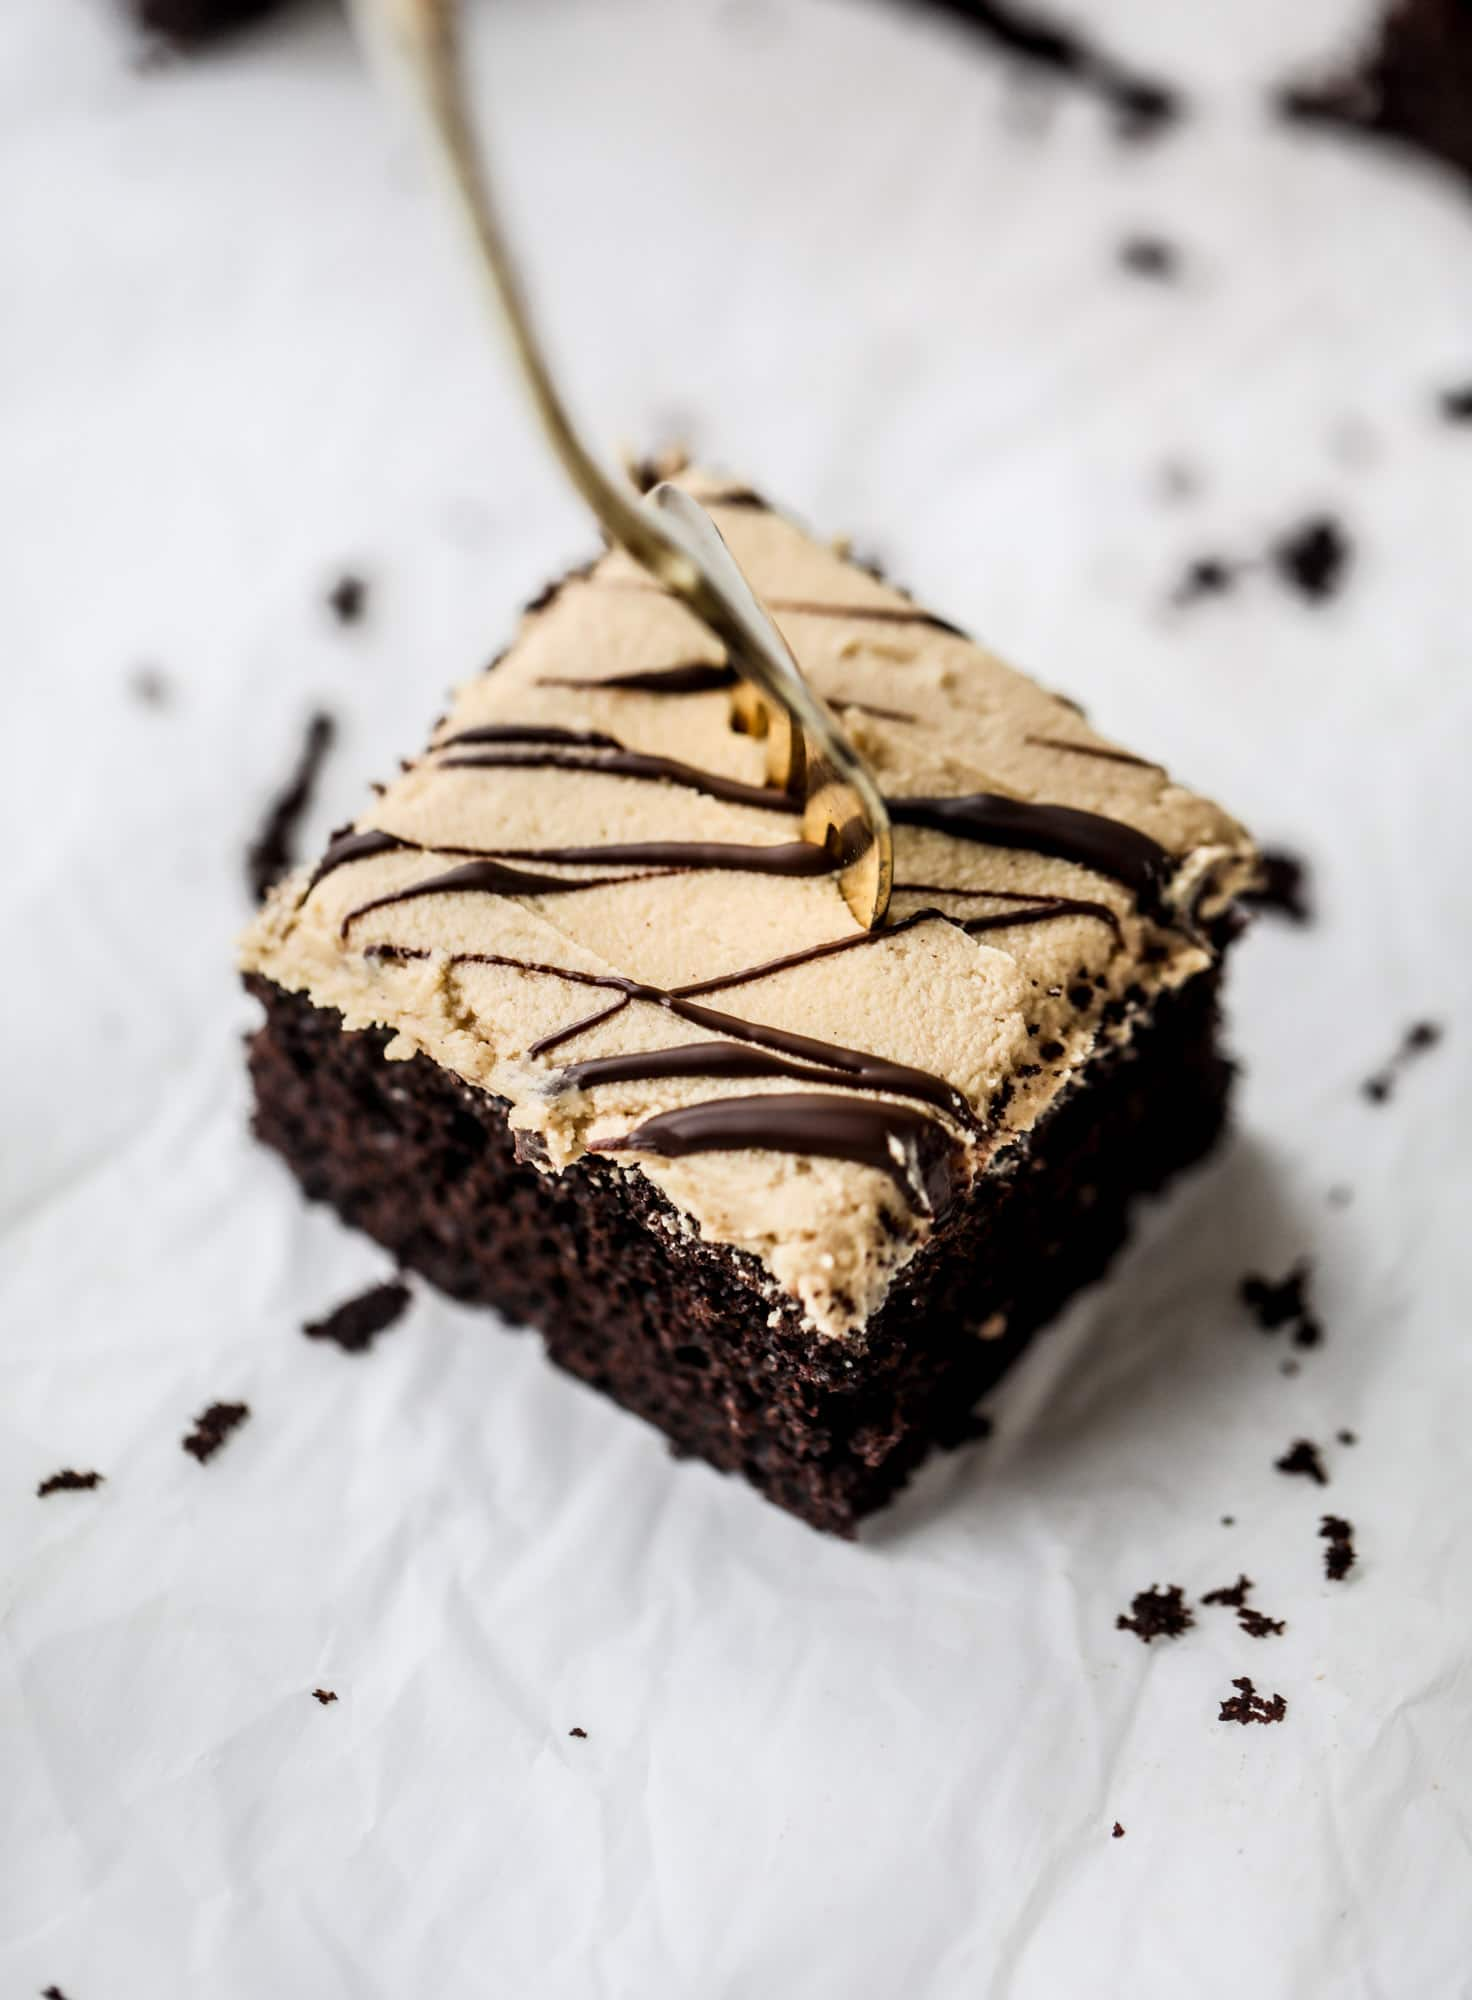 Easy chocolate peanut butter cake is the way to my heart. Moist chocolate cake, fluffy peanut butter frosting. It's the perfect dessert, anytime! I howsweeteats.com #chocolatepeanutbutter #cake